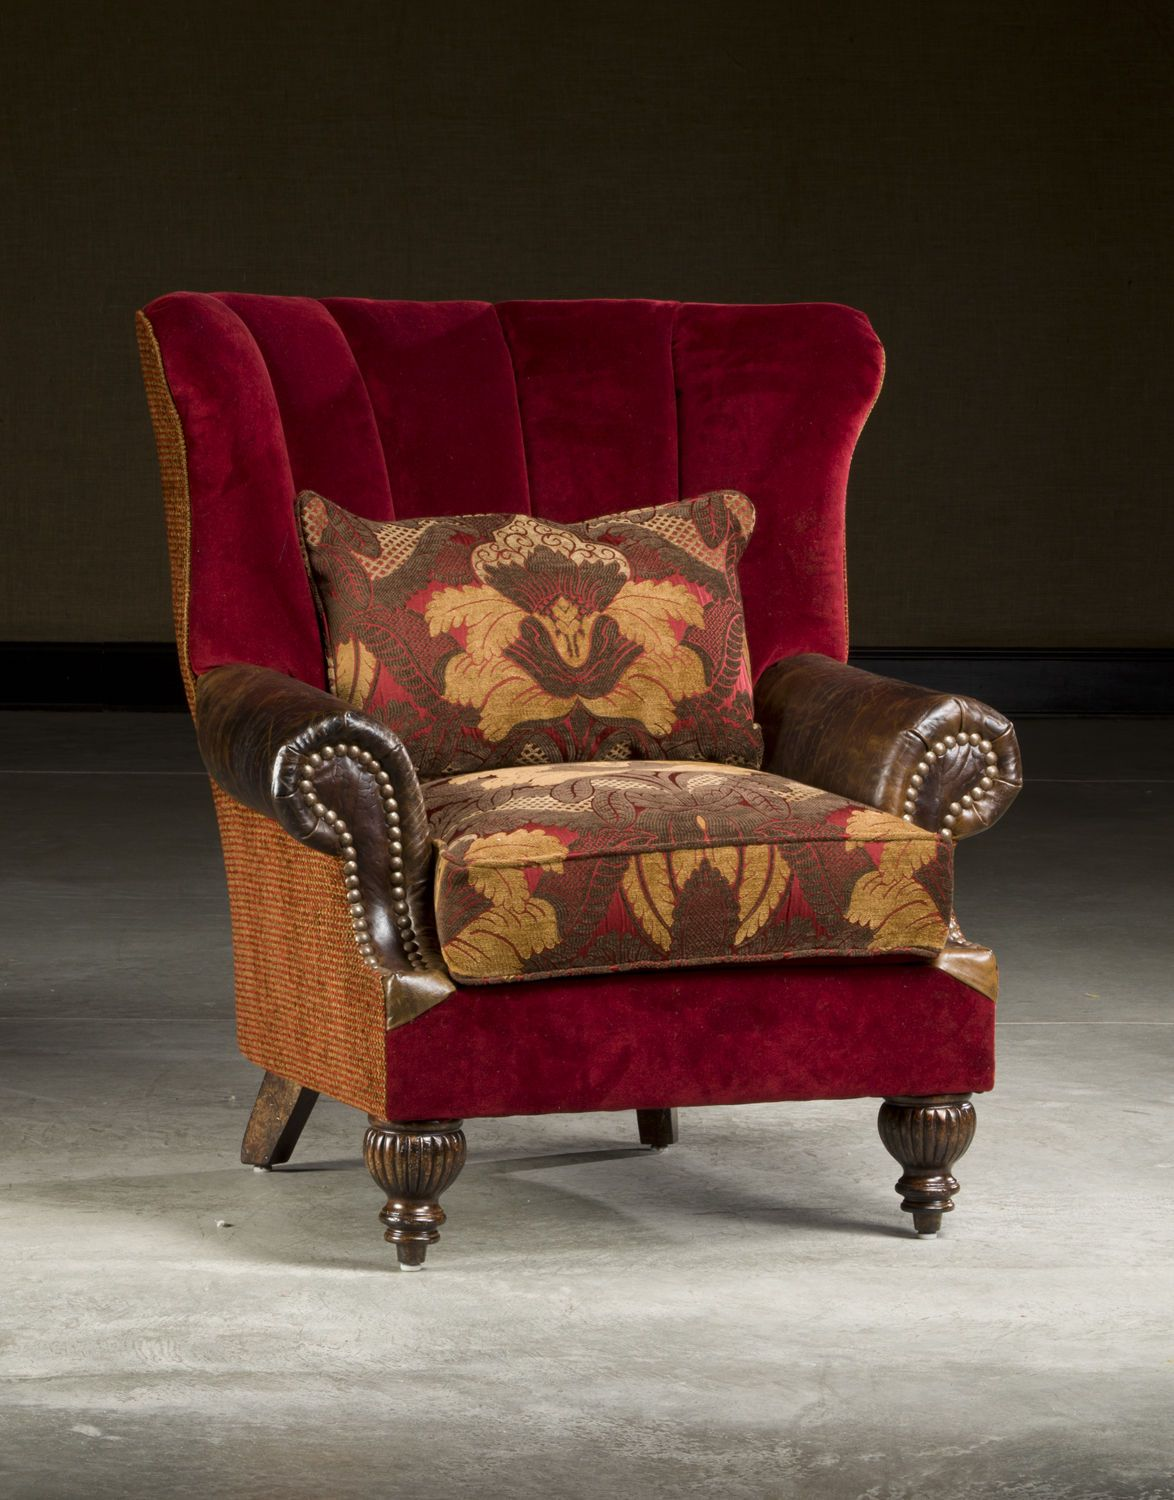 Superieur The Paul Robert Living Room Monty Chair Is Available In The Sarasota, FL  Area From